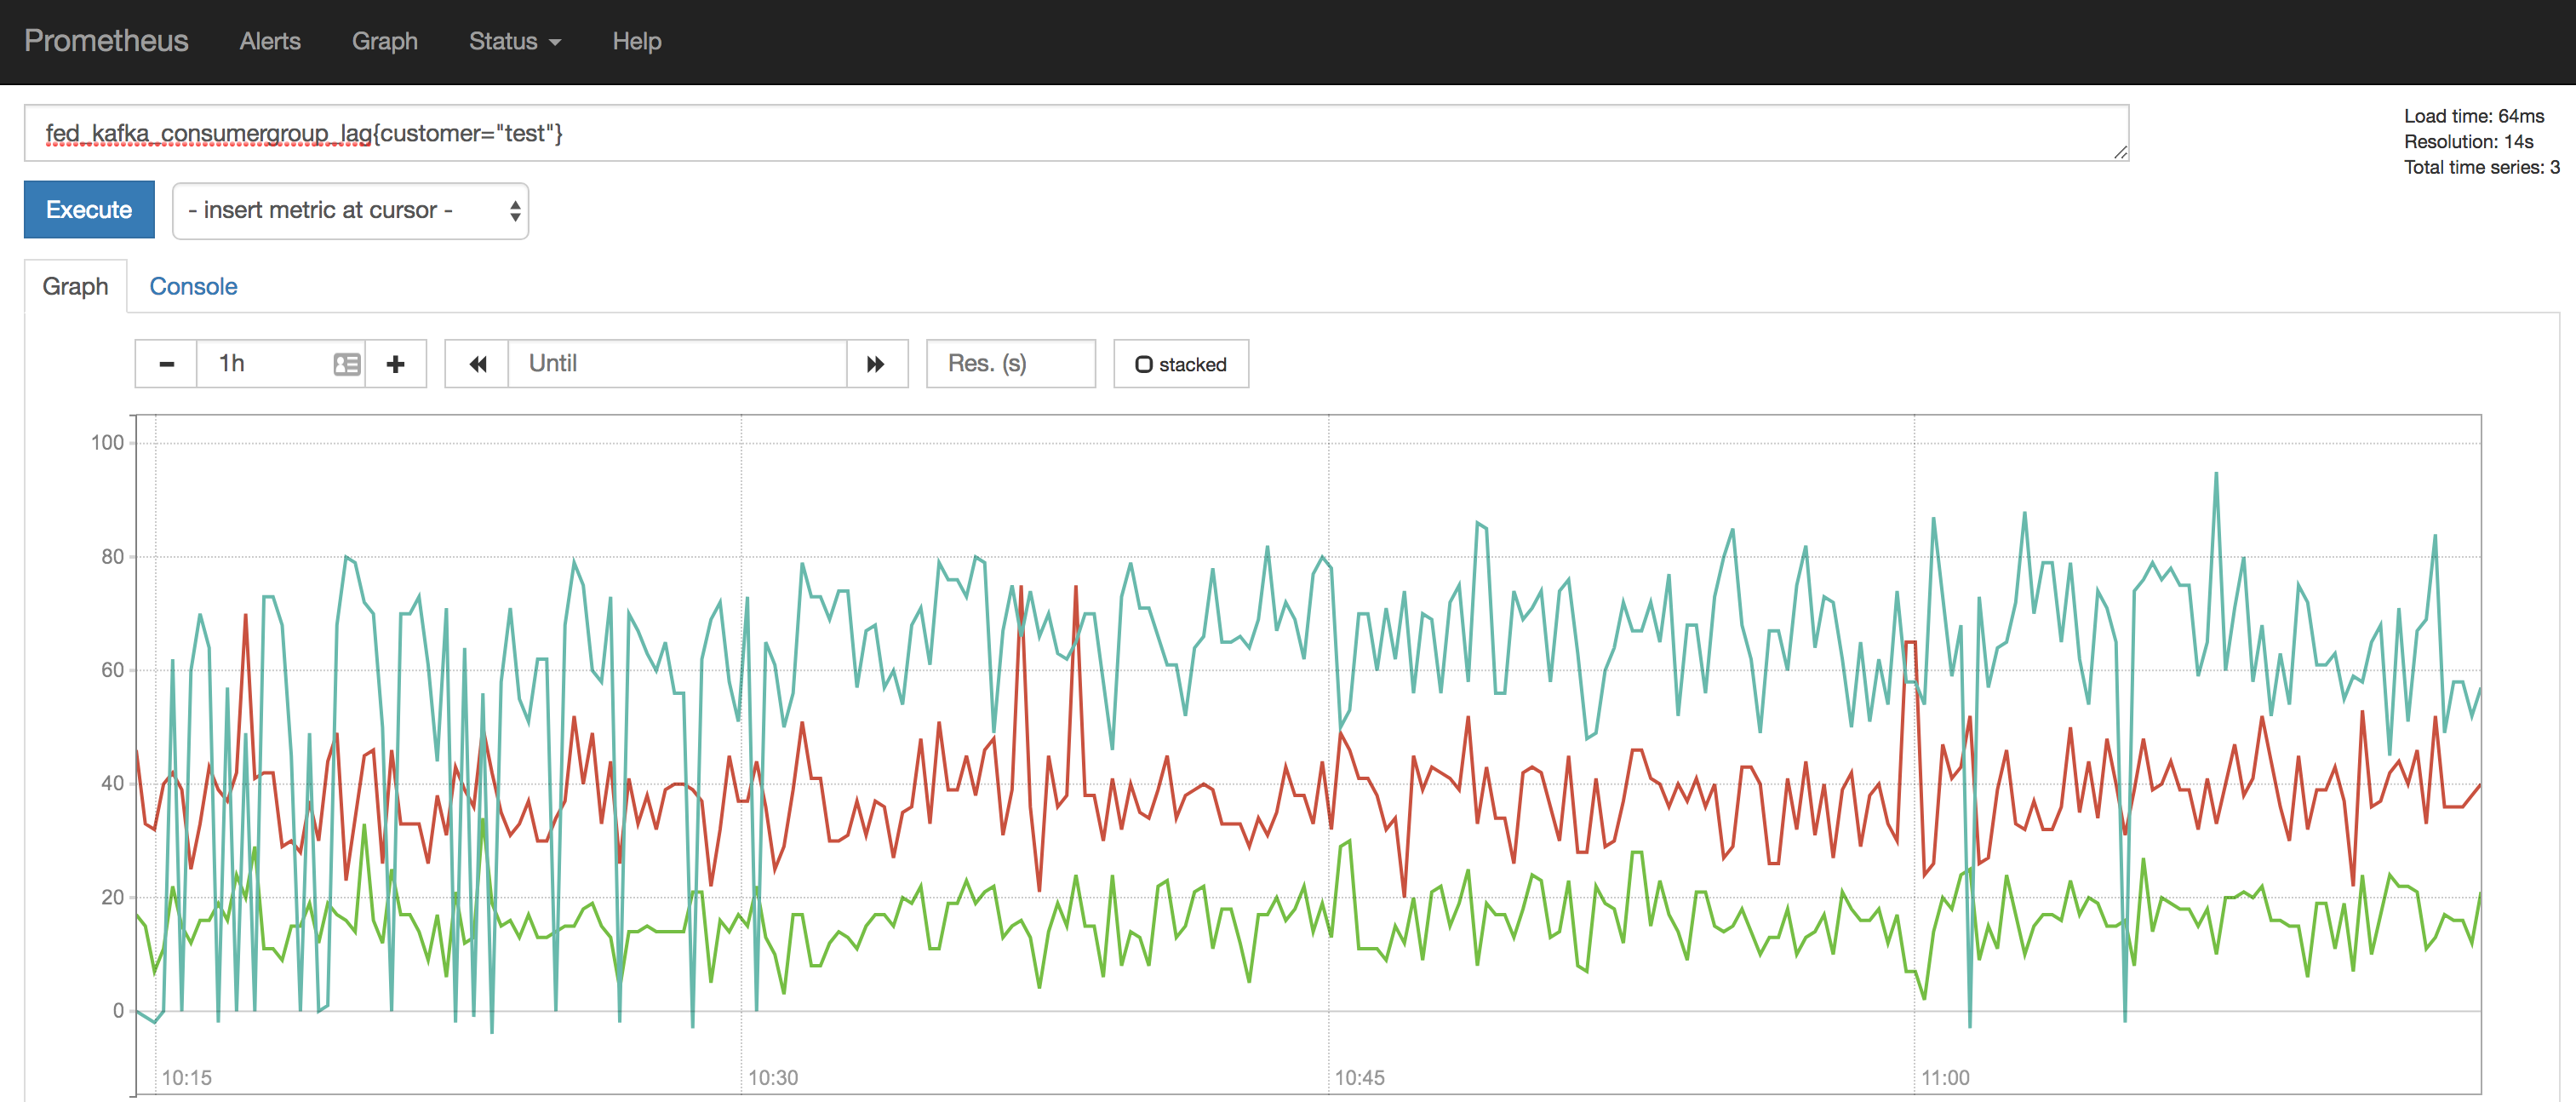 Federated prometheus server doesn't update metric drop